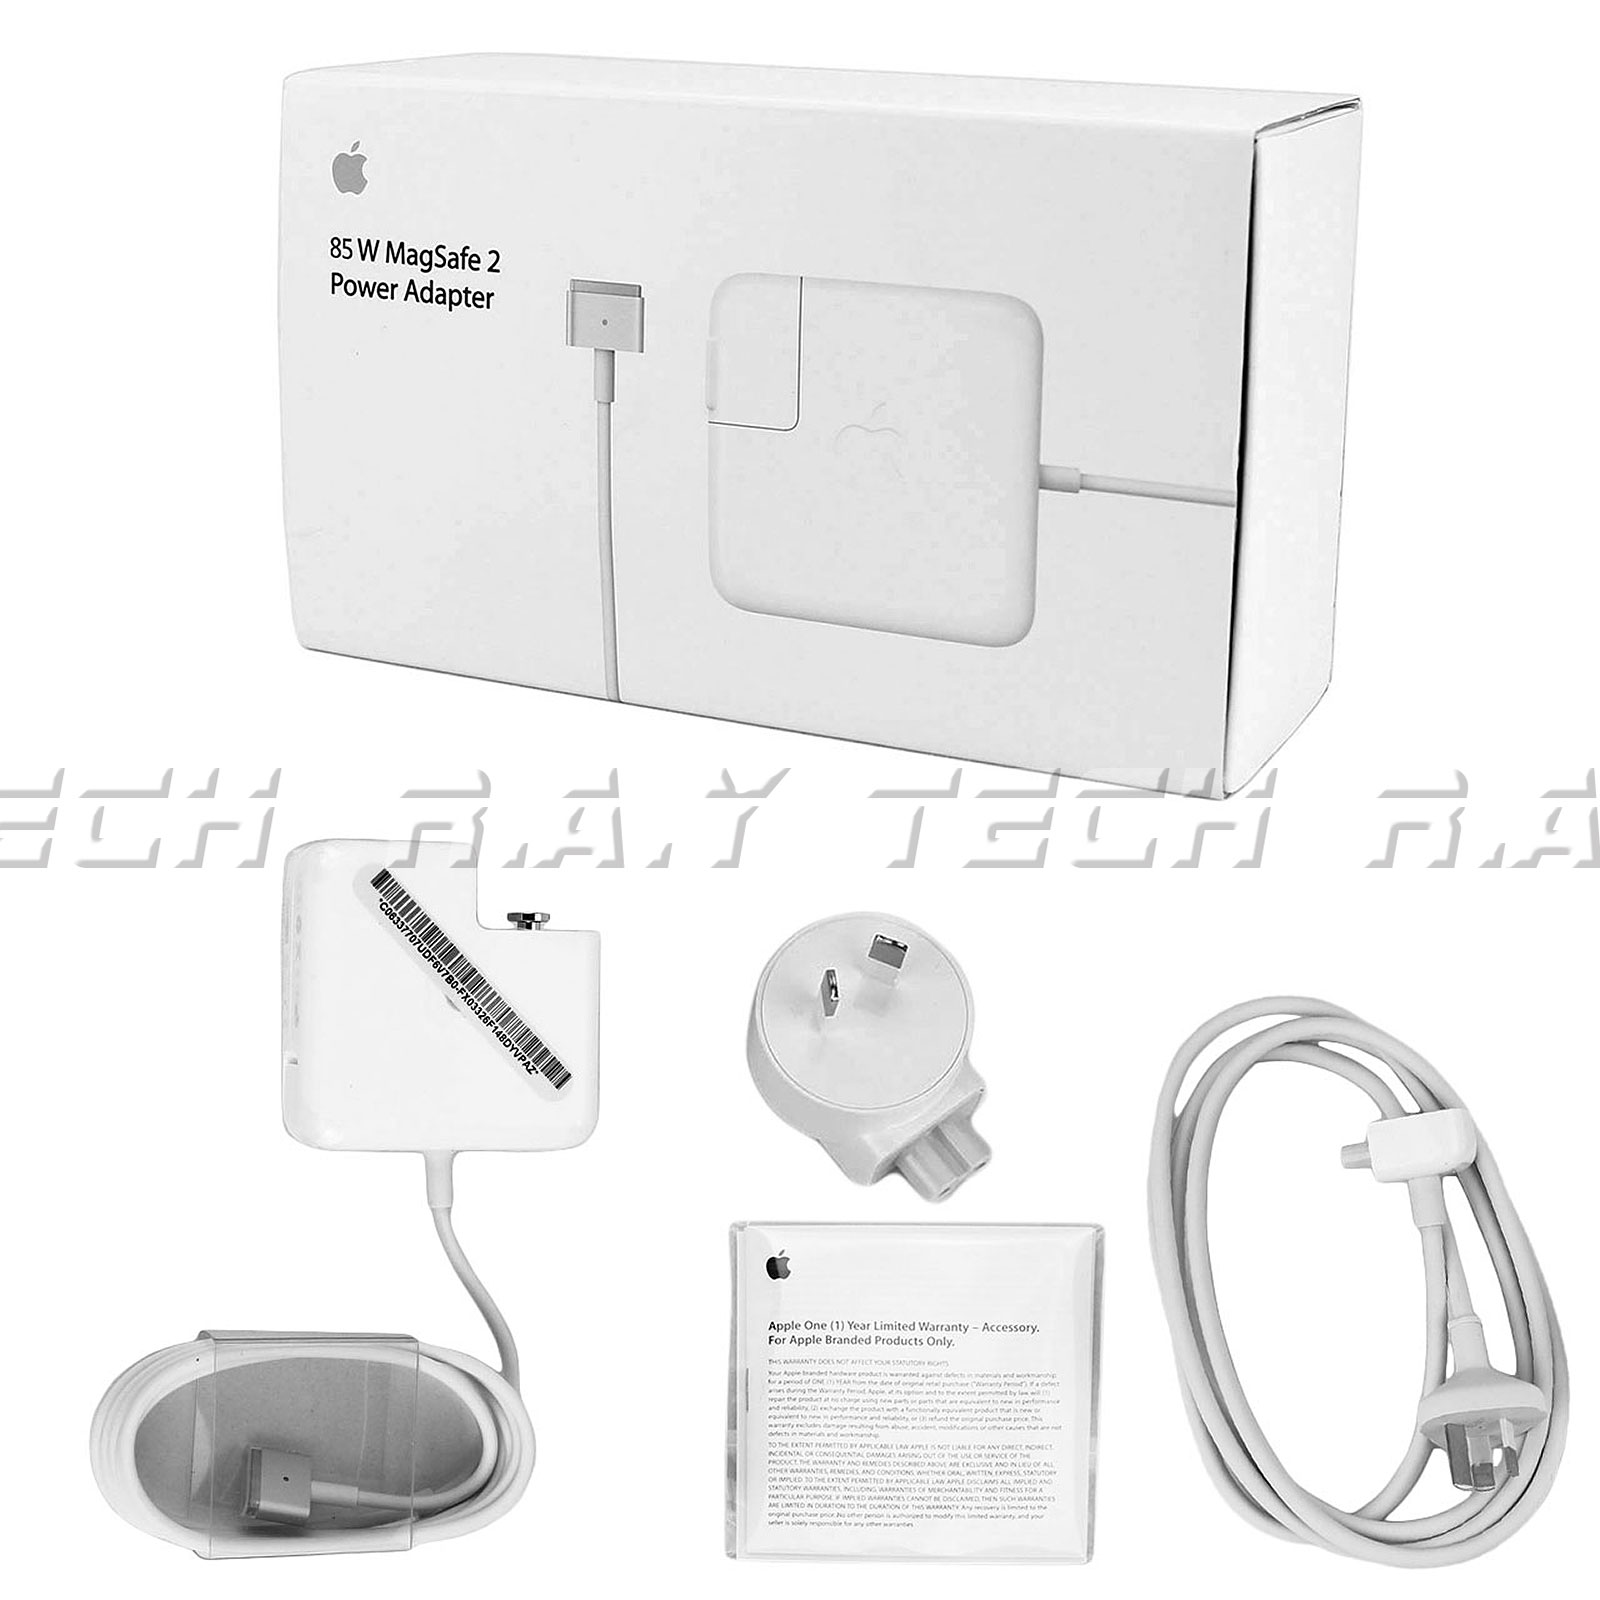 apple 85w magsafe 2 power adapter for macbook pro with retina display. late 2012 apple macbook pro 15\ apple 85w magsafe 2 power adapter for macbook with retina display